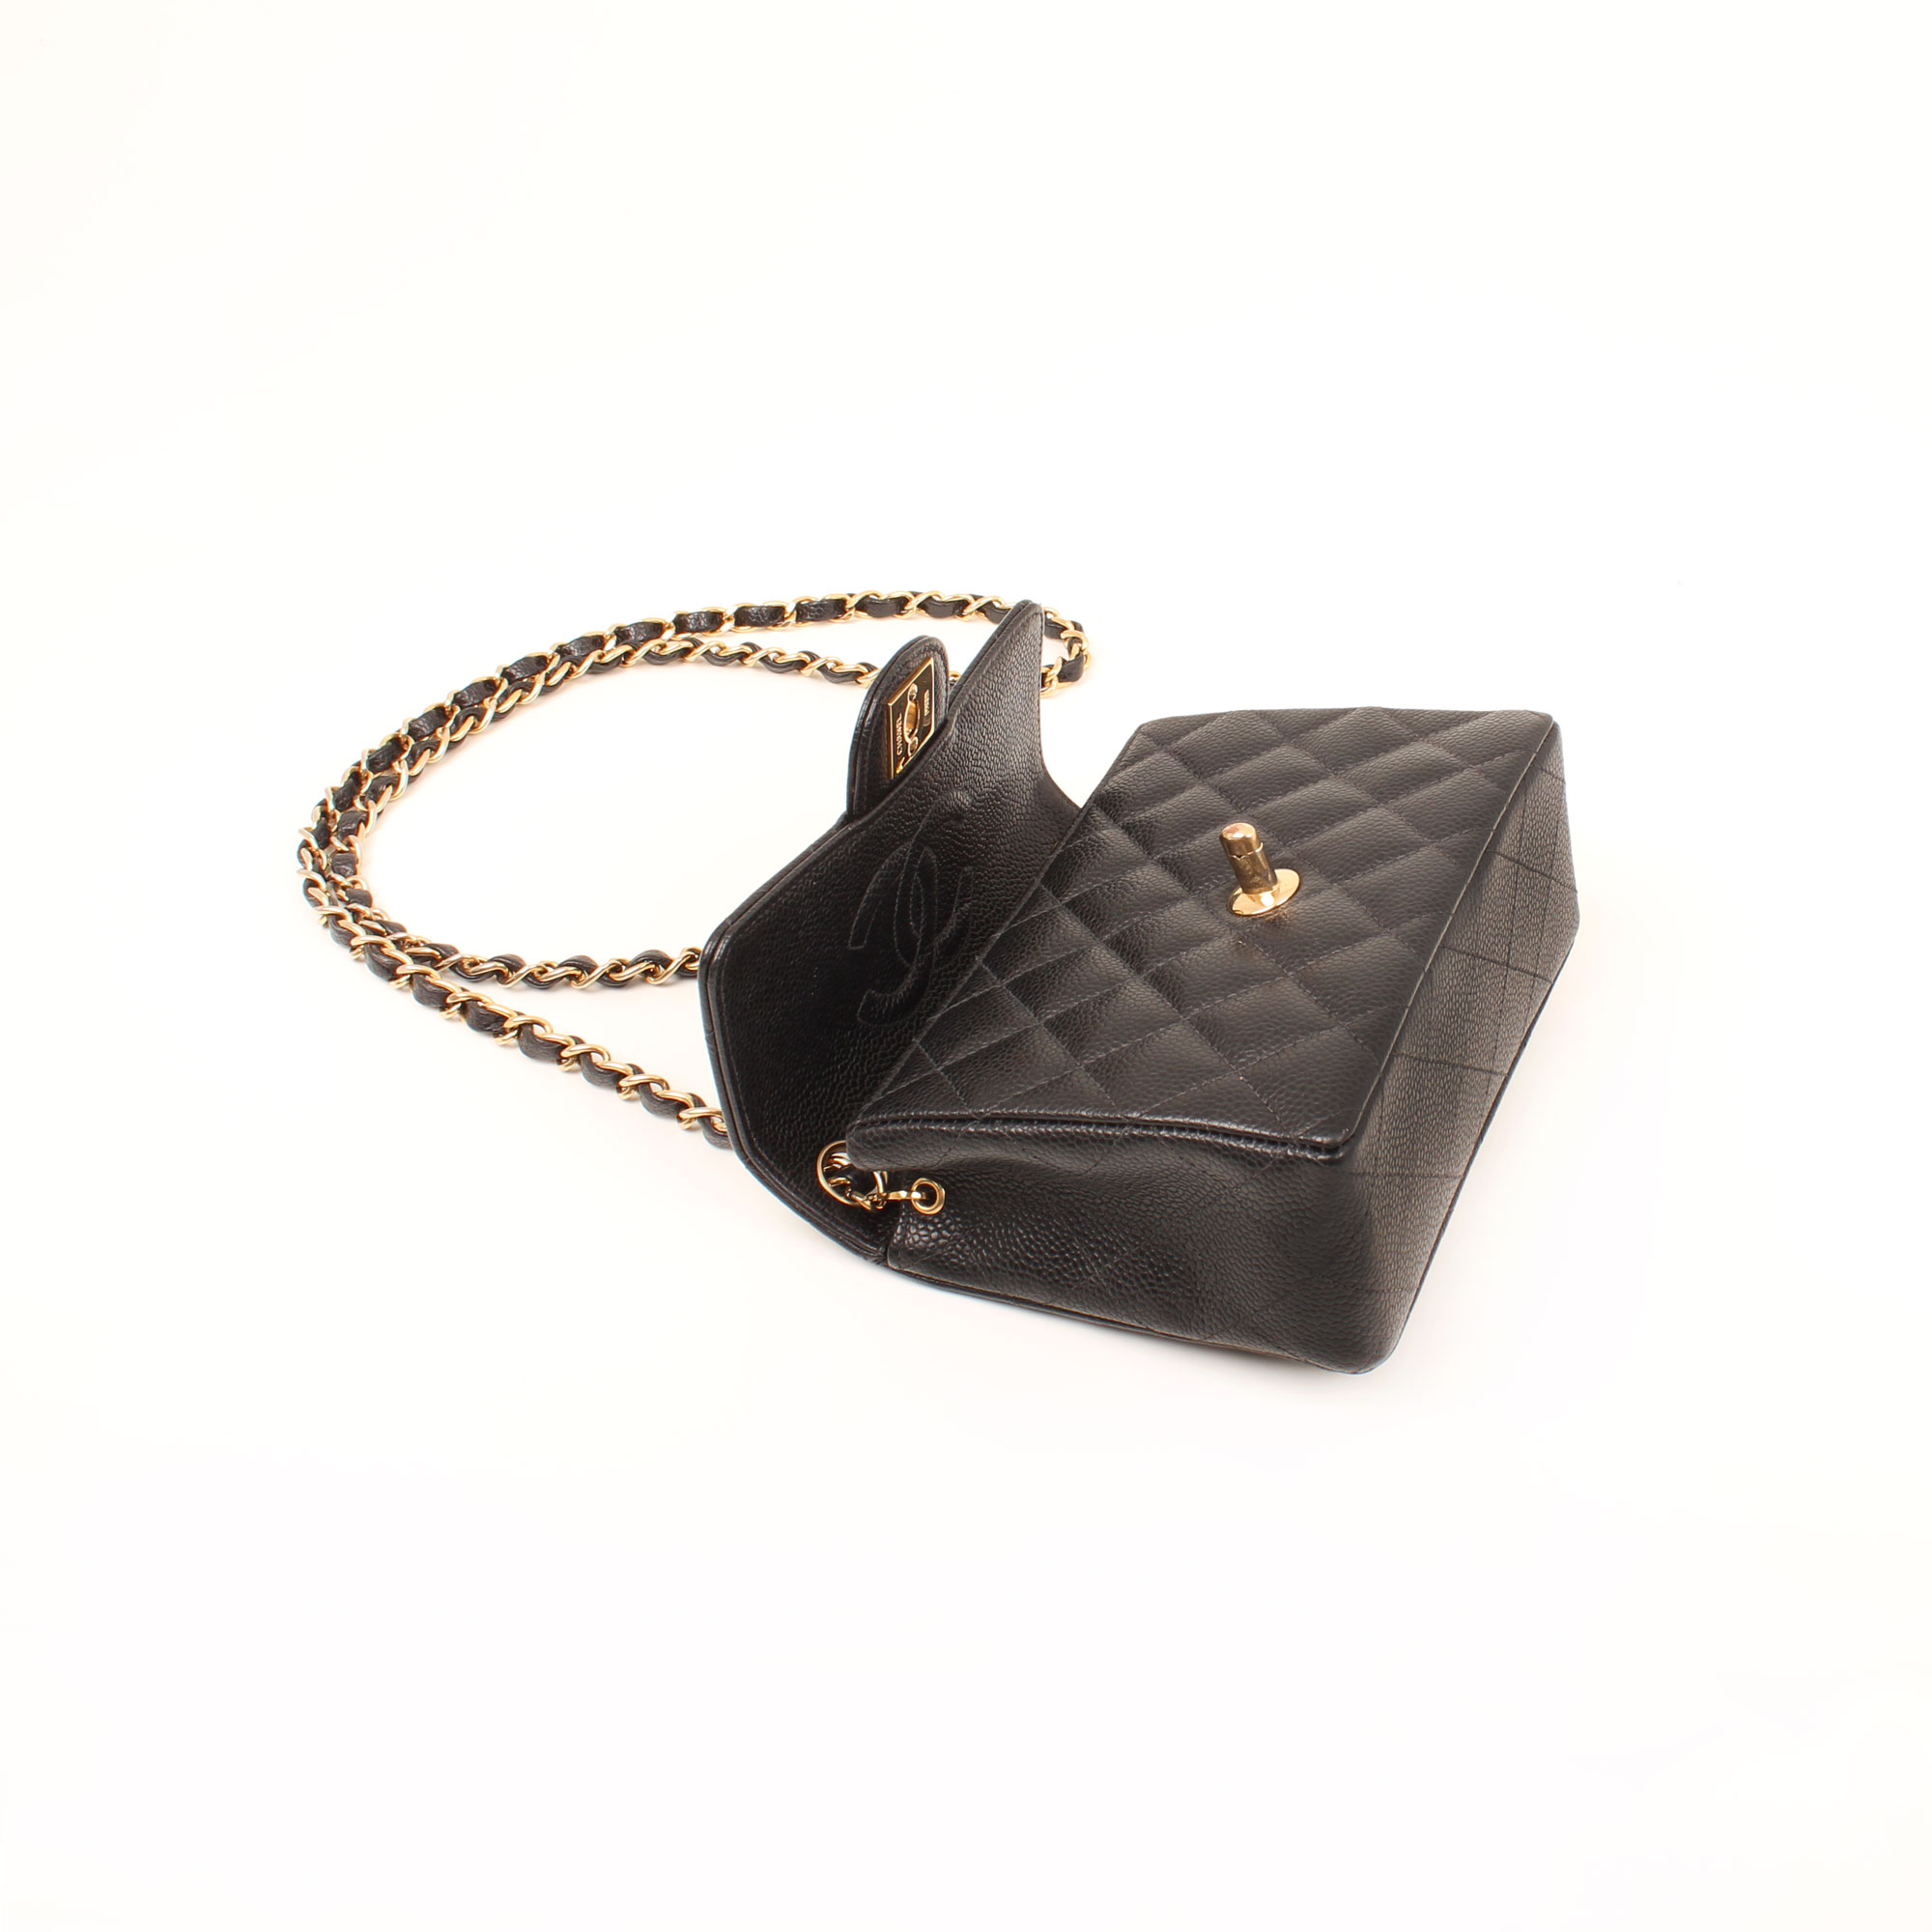 bolso-chanel-mini-caviar-negro-single-flap-abierto